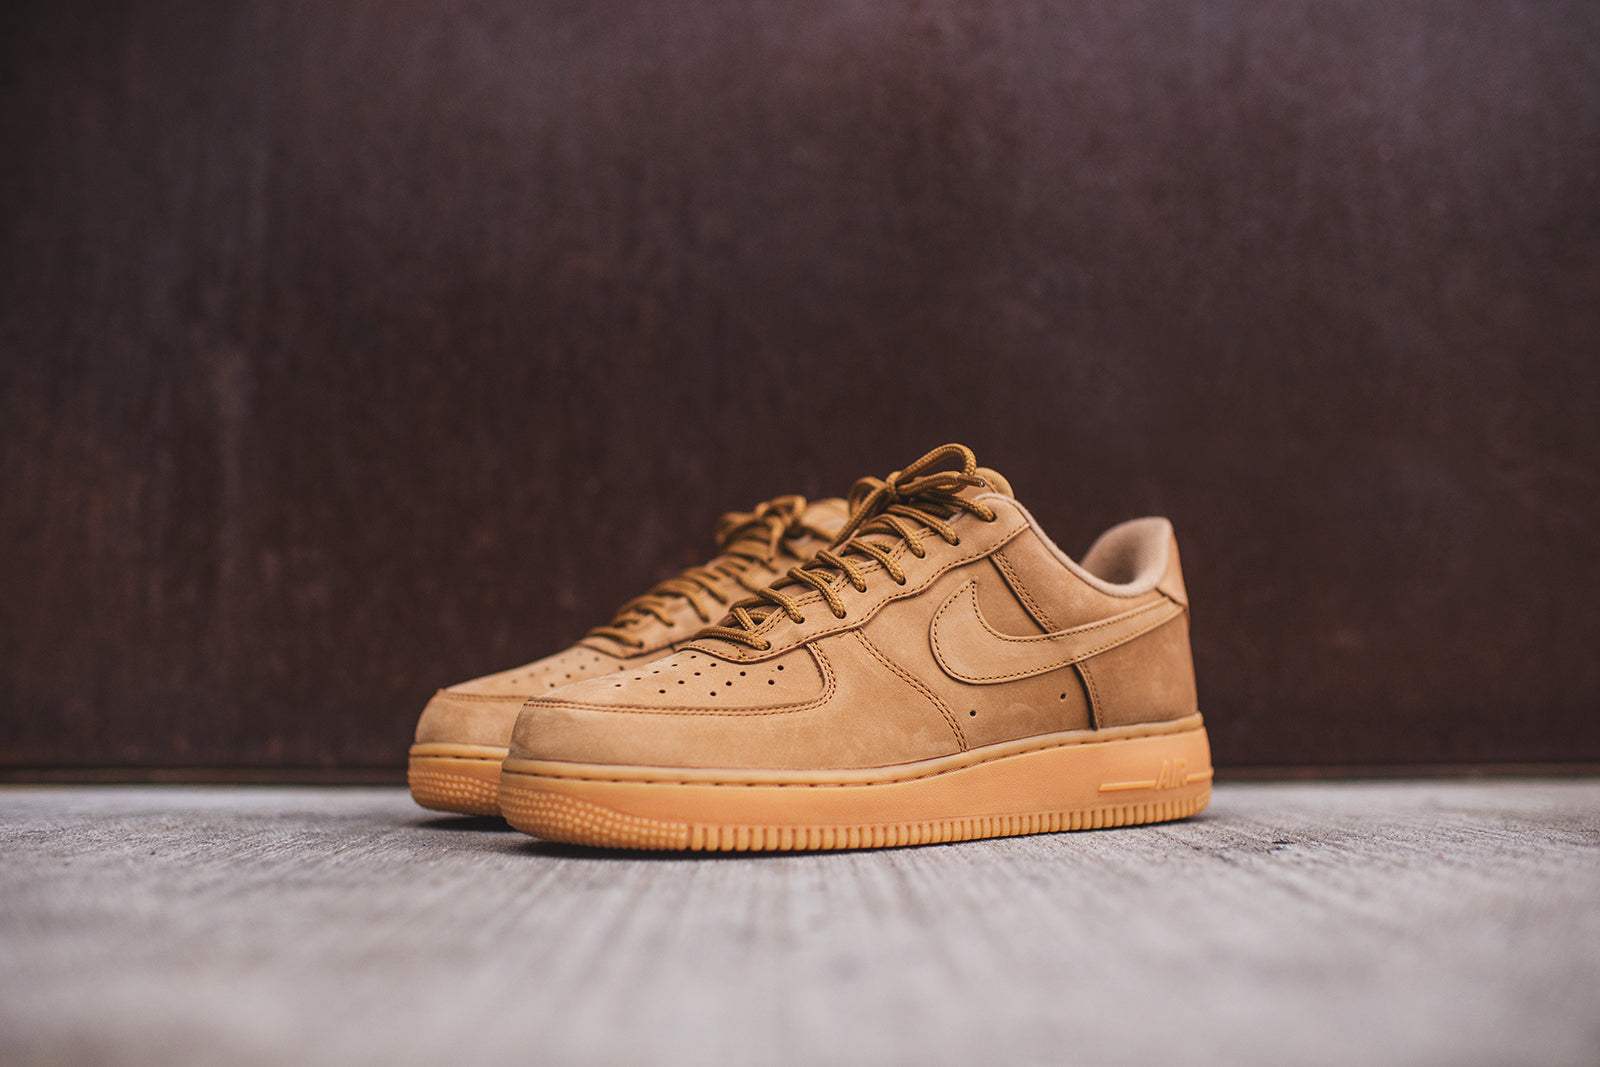 outlet store cce55 9eafc Nike Air Force 1 Low '07 - Flax – Kith